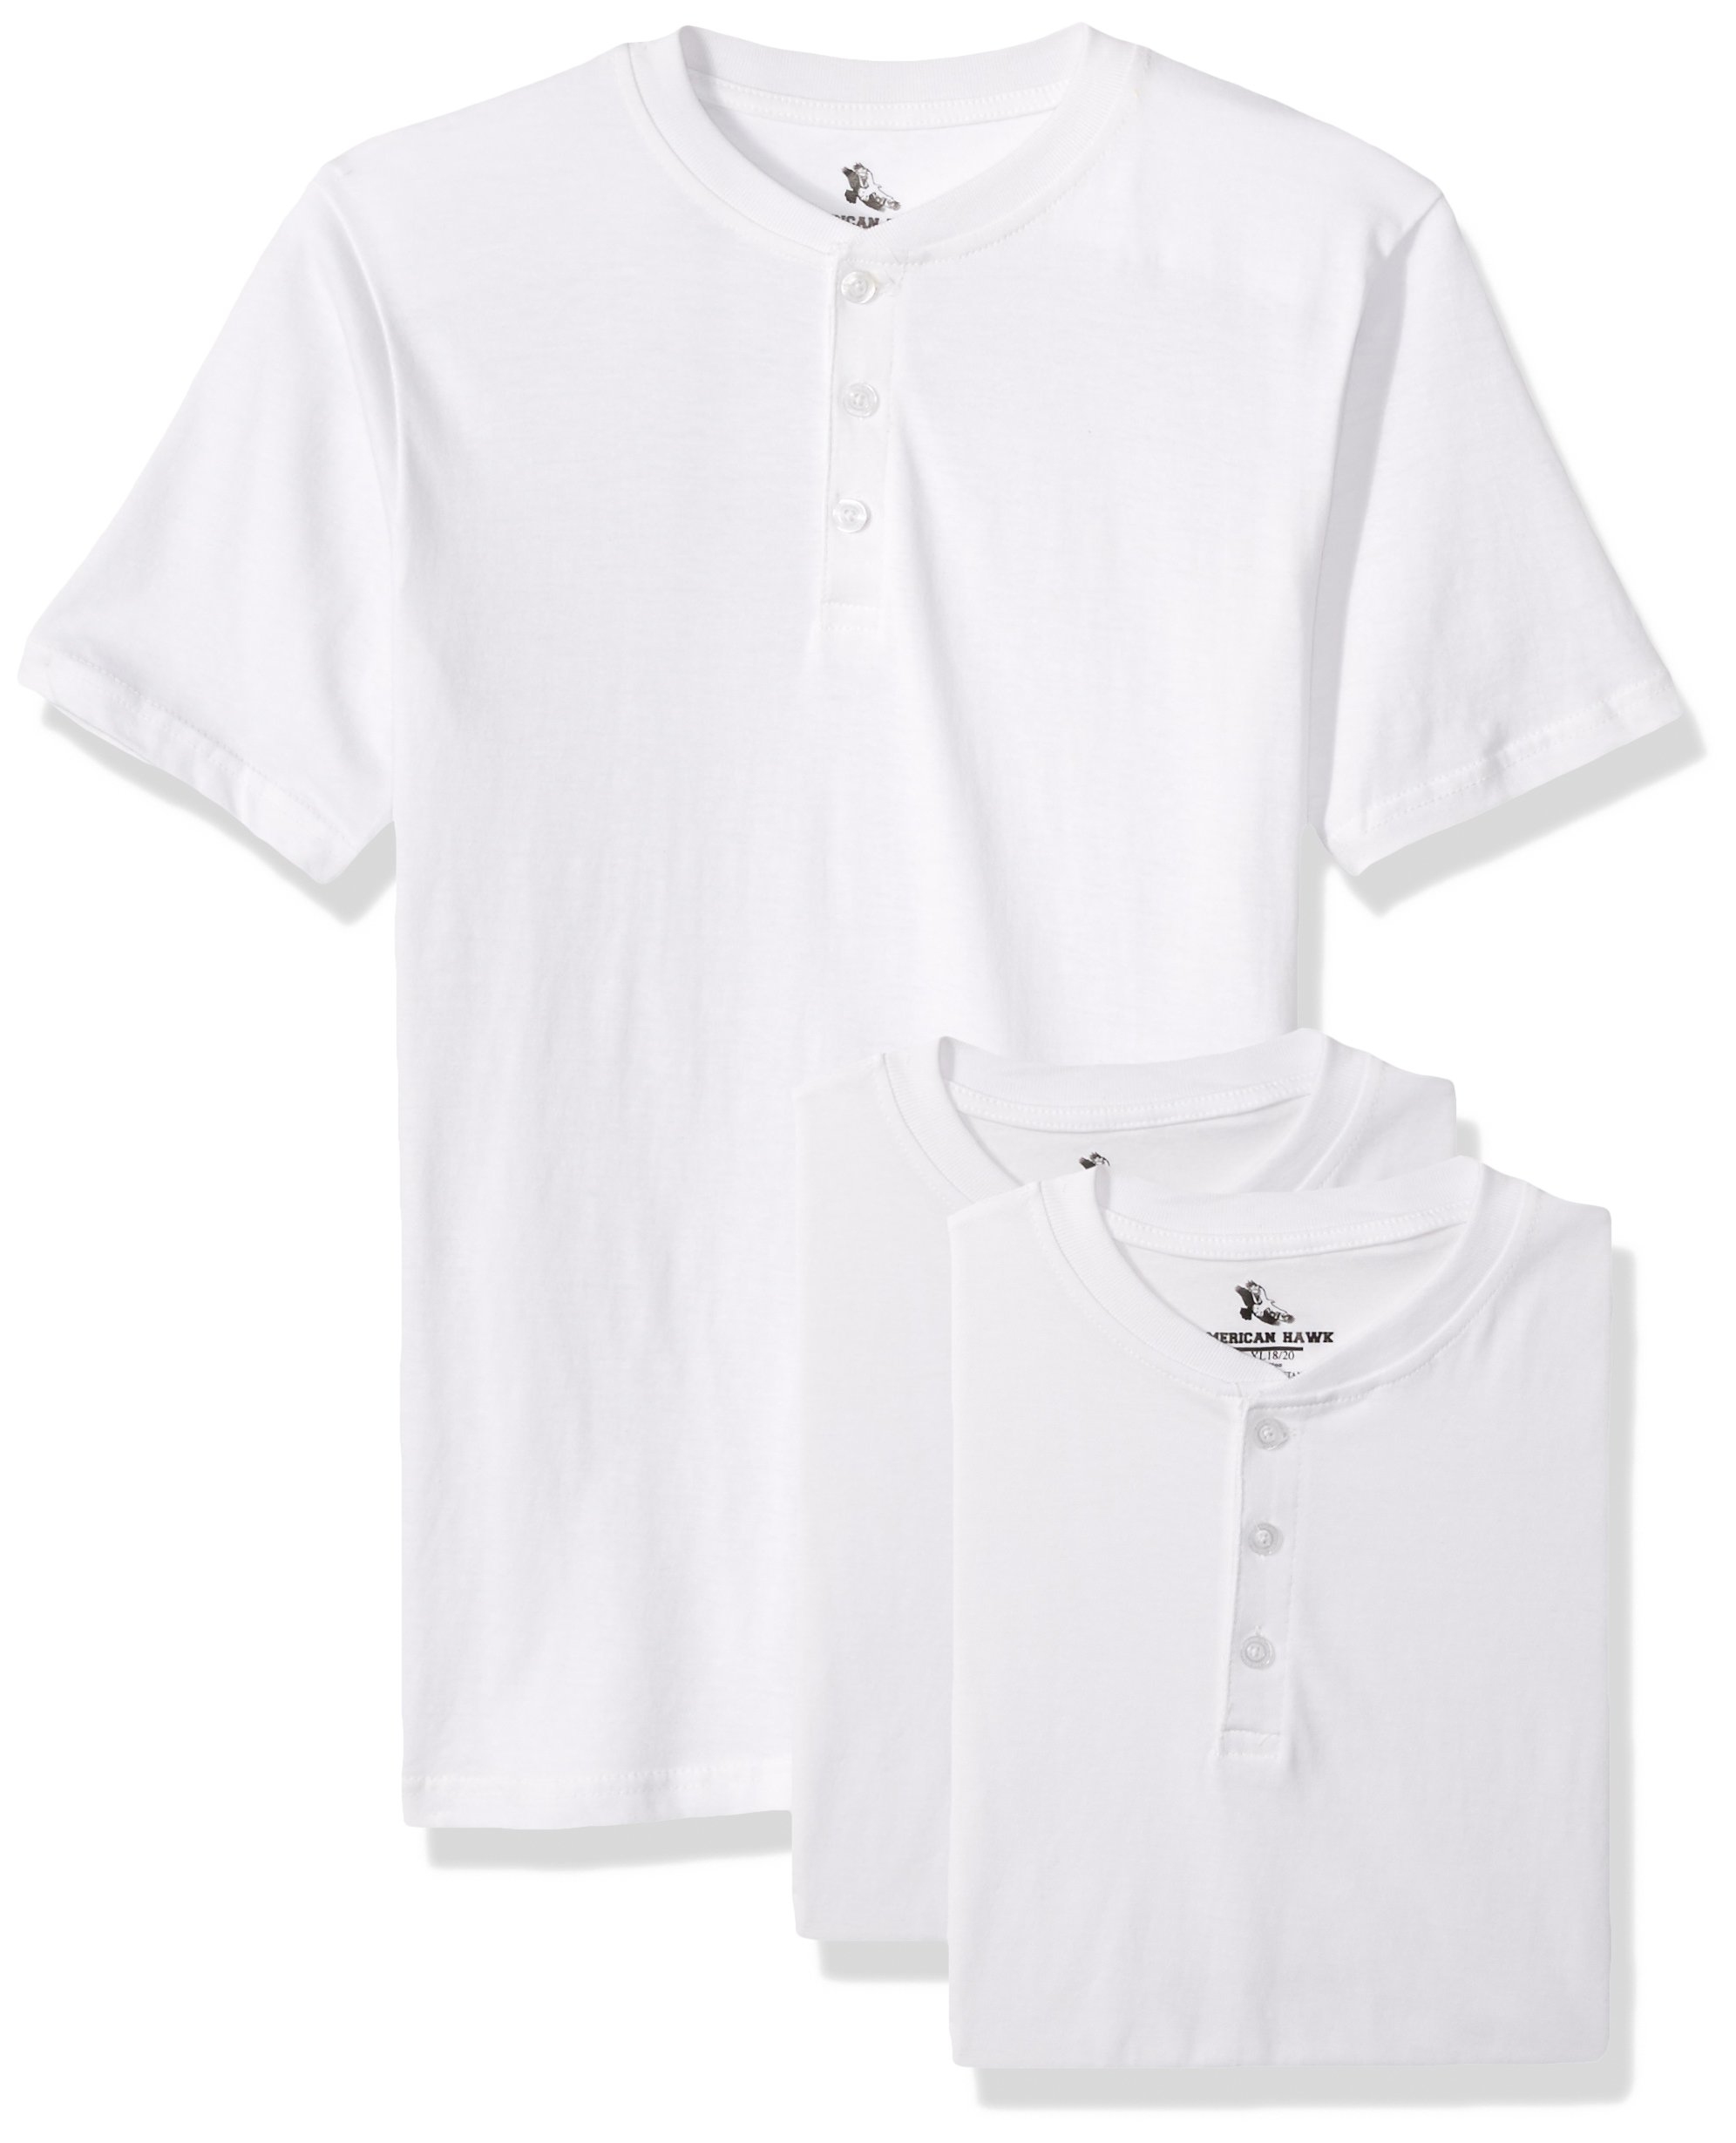 American Hawk Little Boys 3 Piece Pack Henley Shirt White/White/White 4T/4